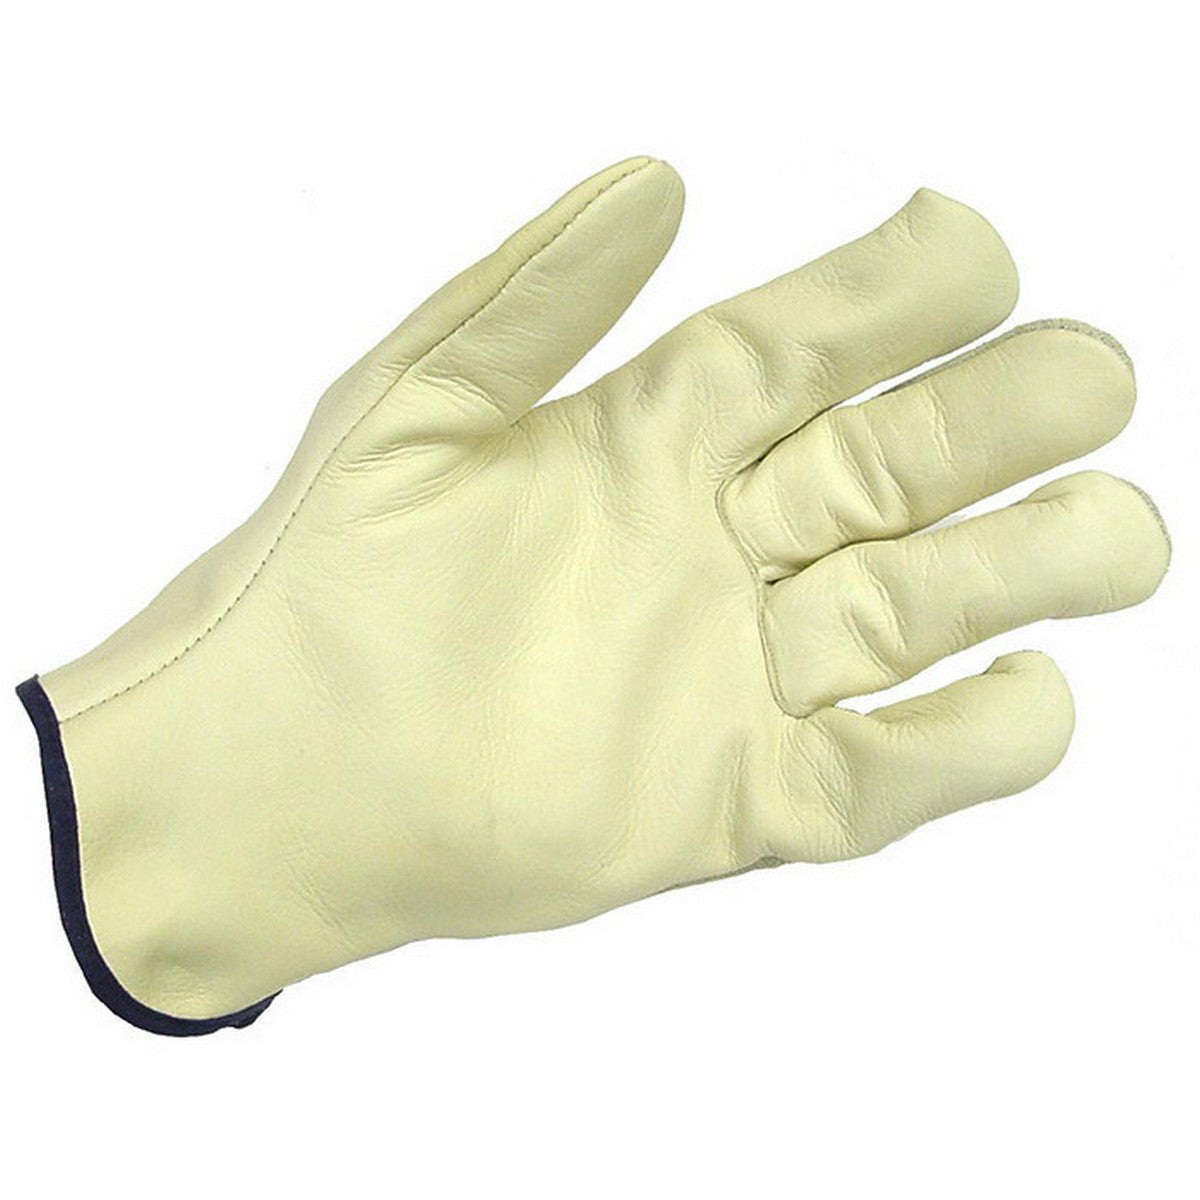 Image of Premium Riggers Gloves